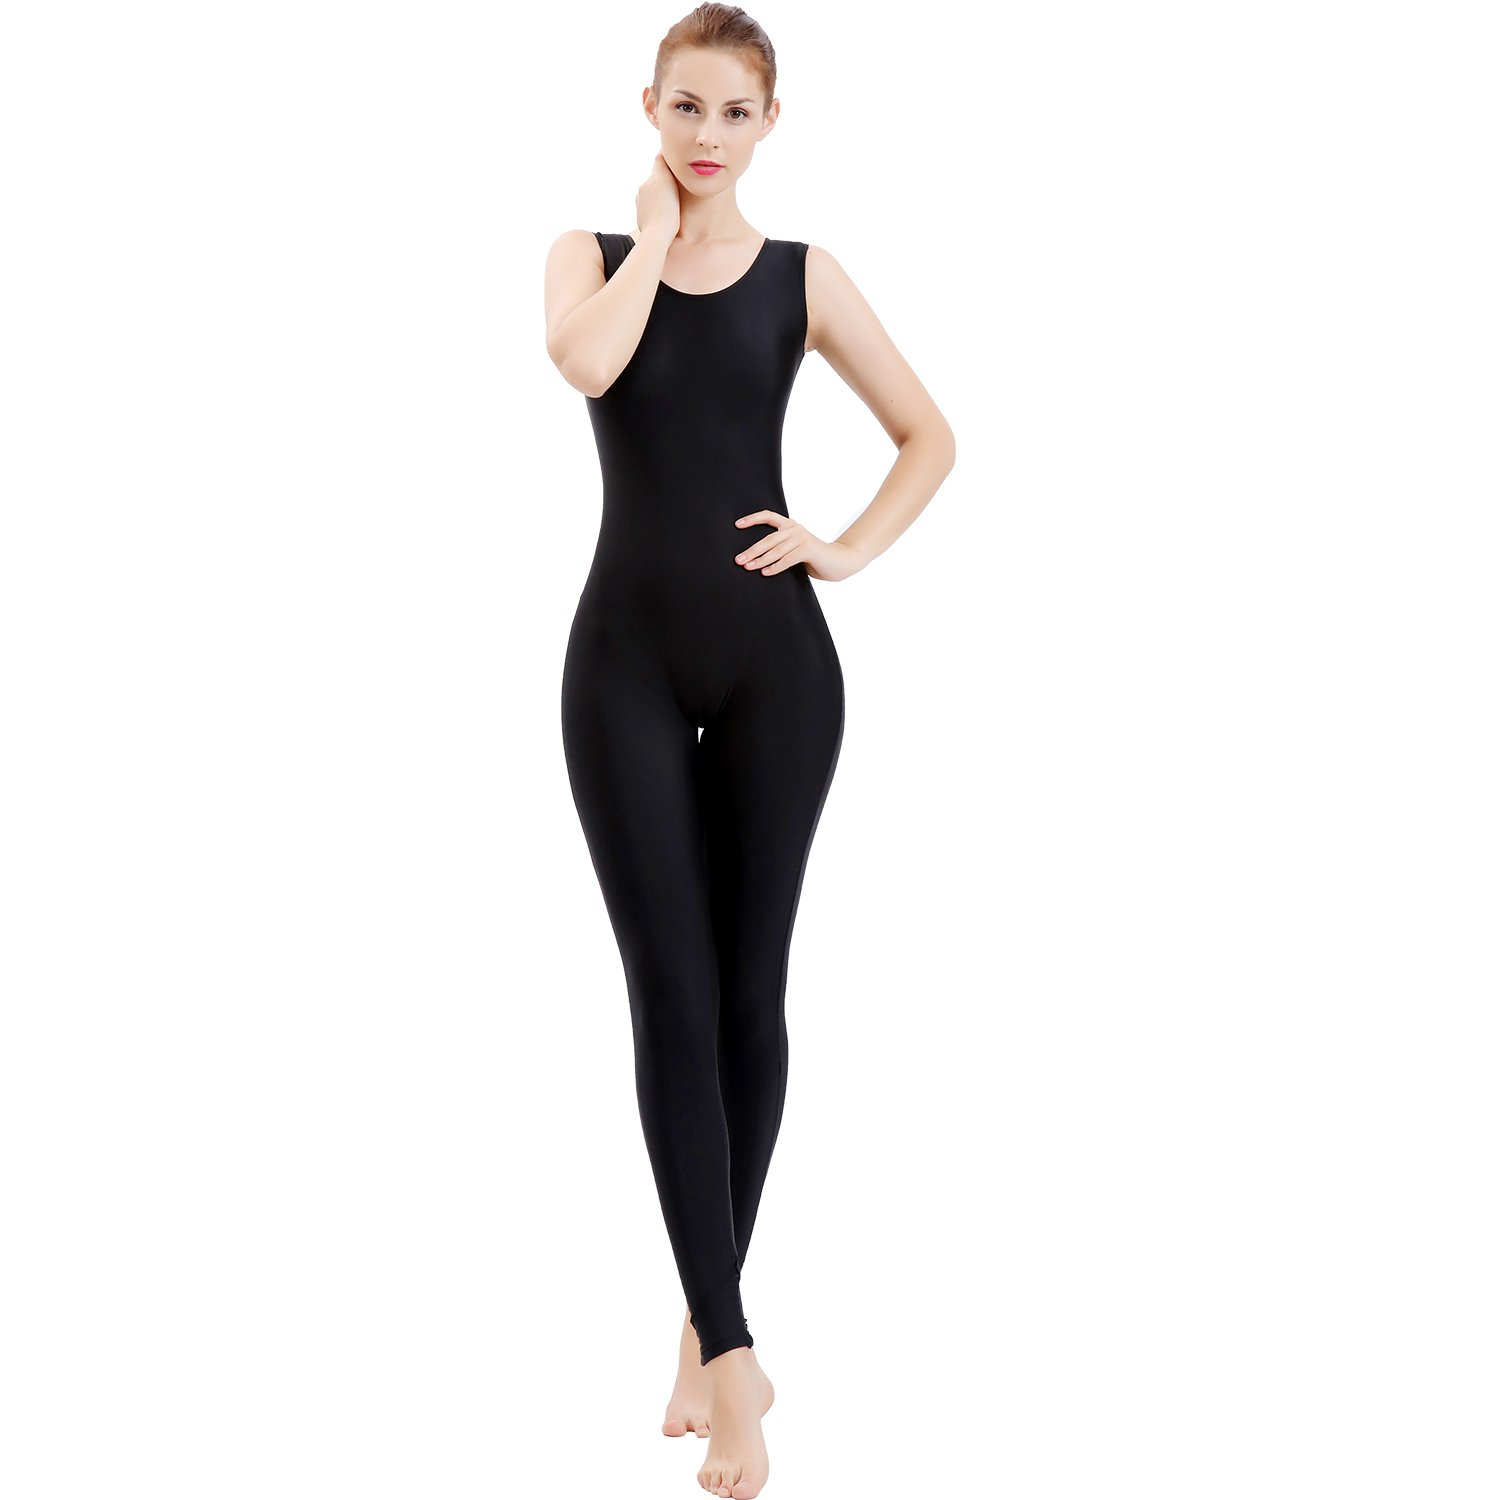 Gaibest Women Lycra Spandex Sleeveless Tank Dance Unitard Bodysuit by GAIBEST